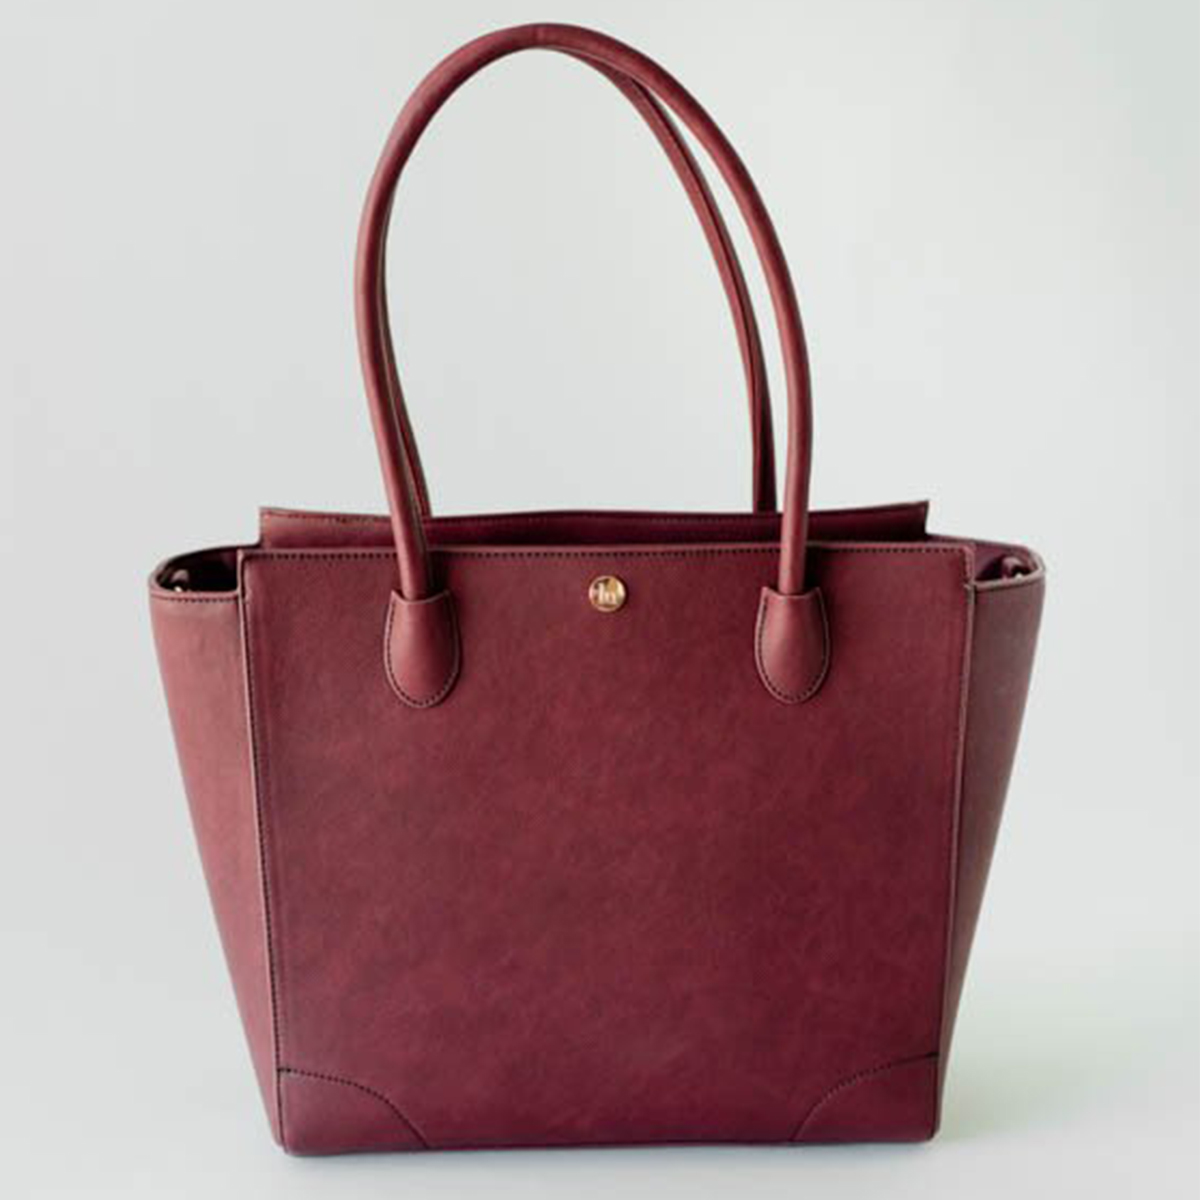 Large faux leather tote in berry color